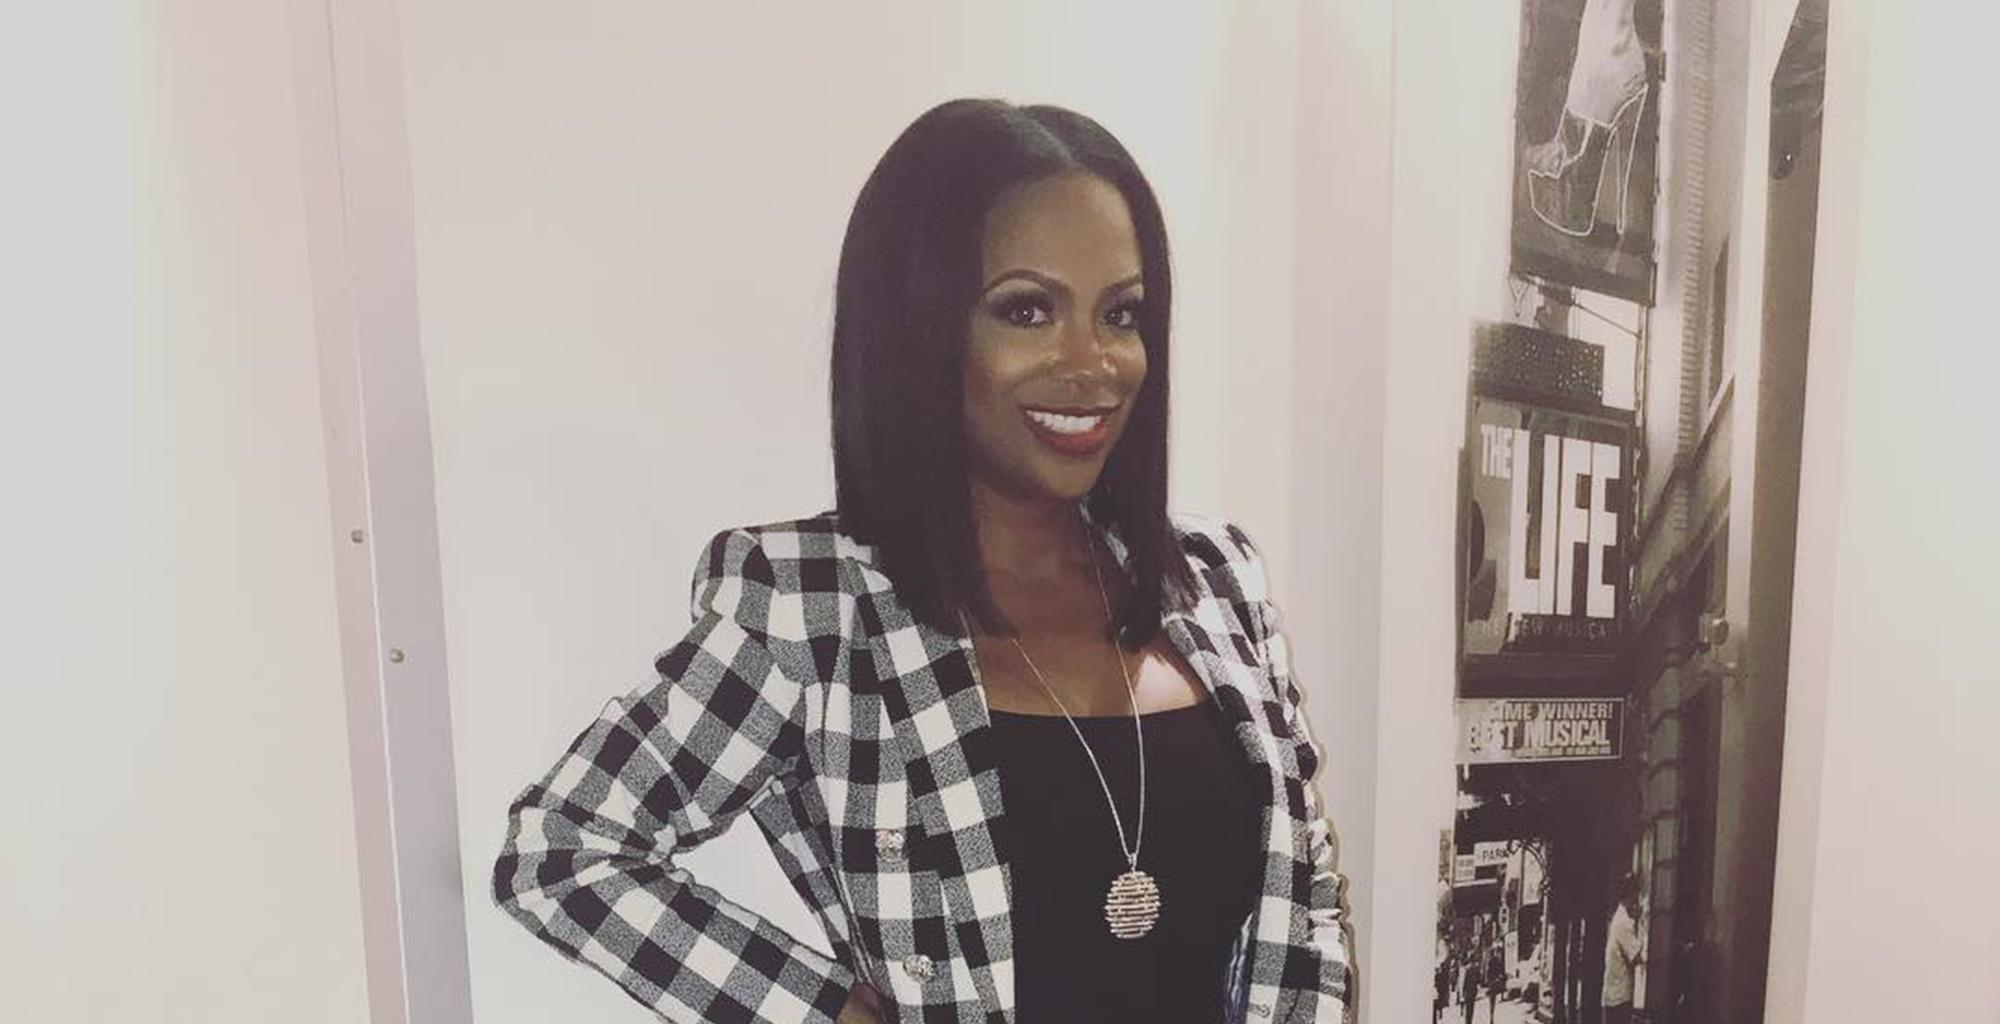 Kandi Burruss And Some 'Real Housewives Of Atlanta' Fans Think She Should Leave The Show If Phaedra Parks Makes A Comeback